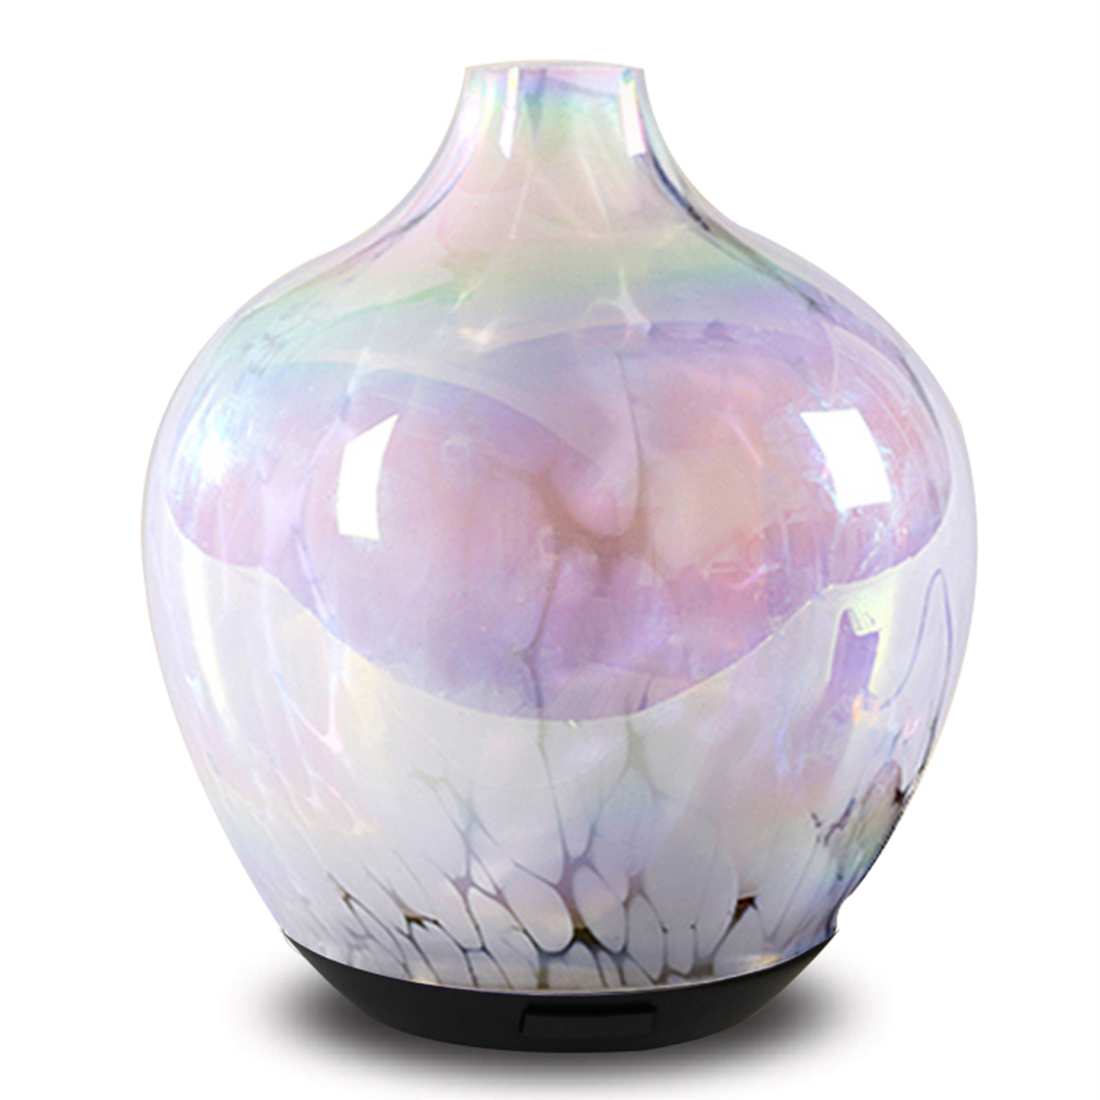 Art Glass ultrasonic aromatherapy diffuser